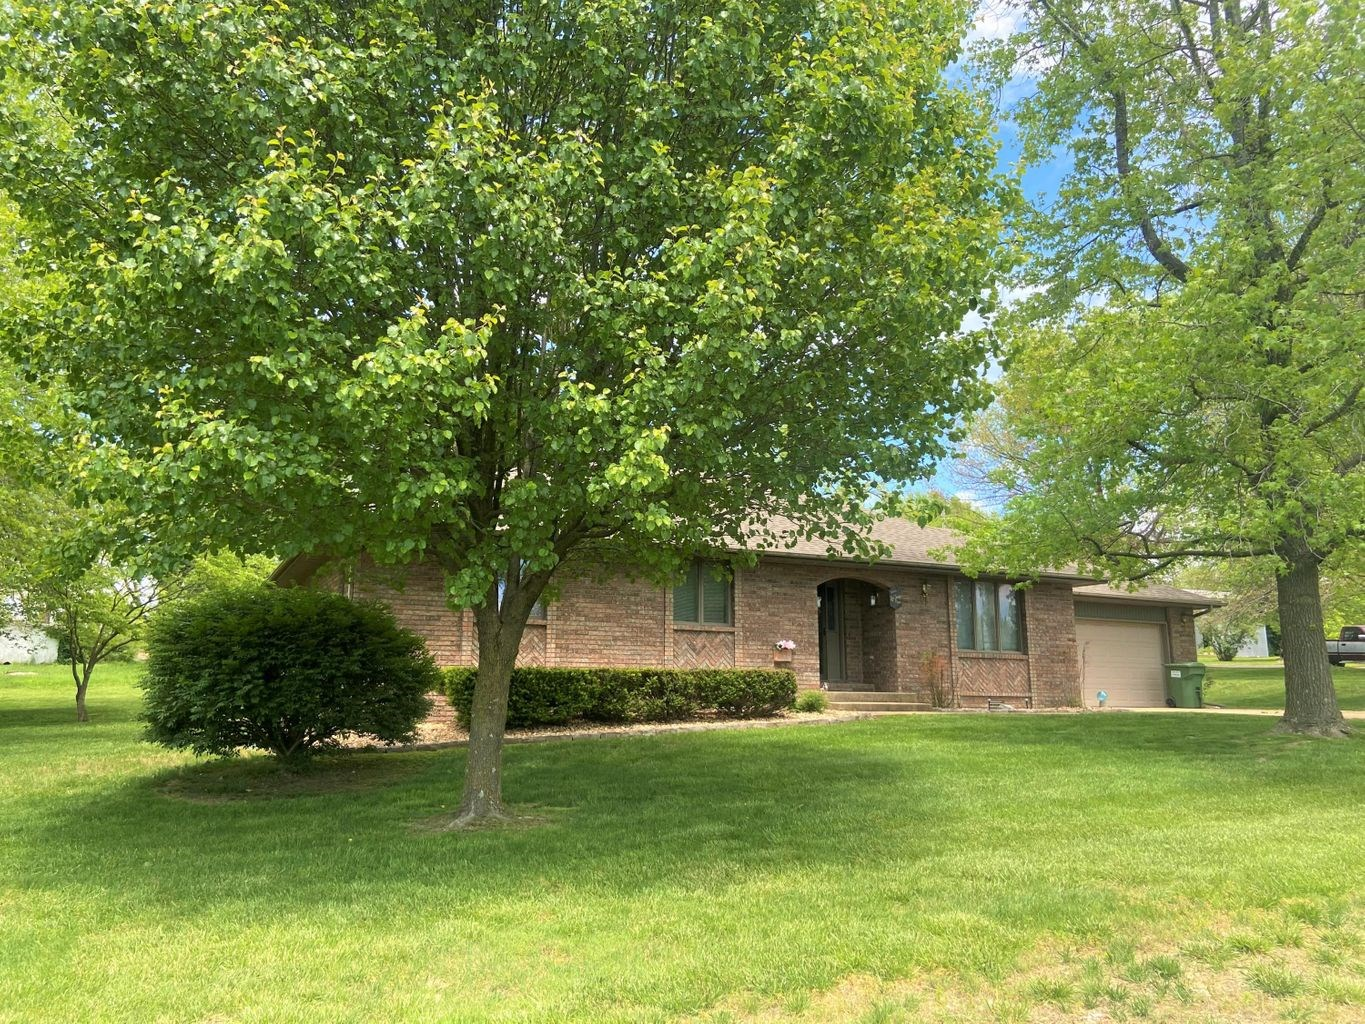 House for Sale in South Central Missouri Ozarks